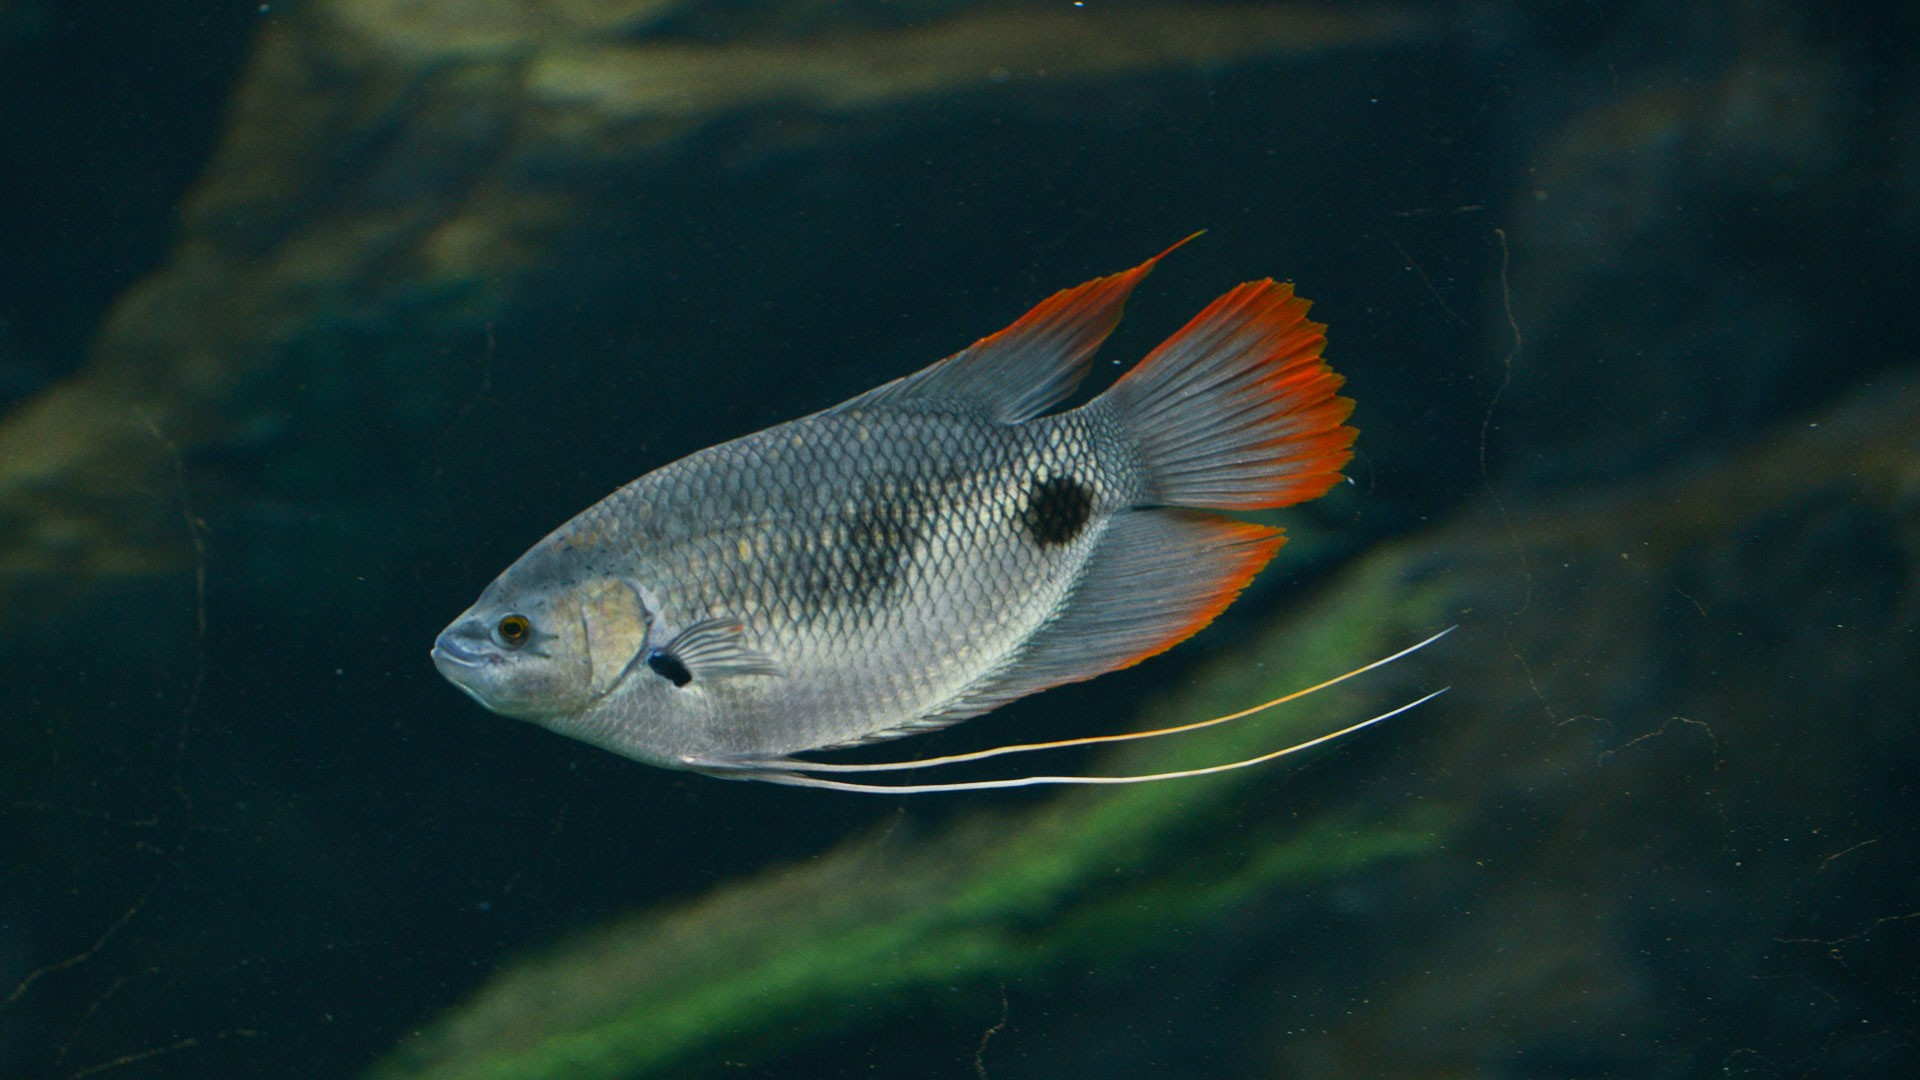 Red-tailed Gourami